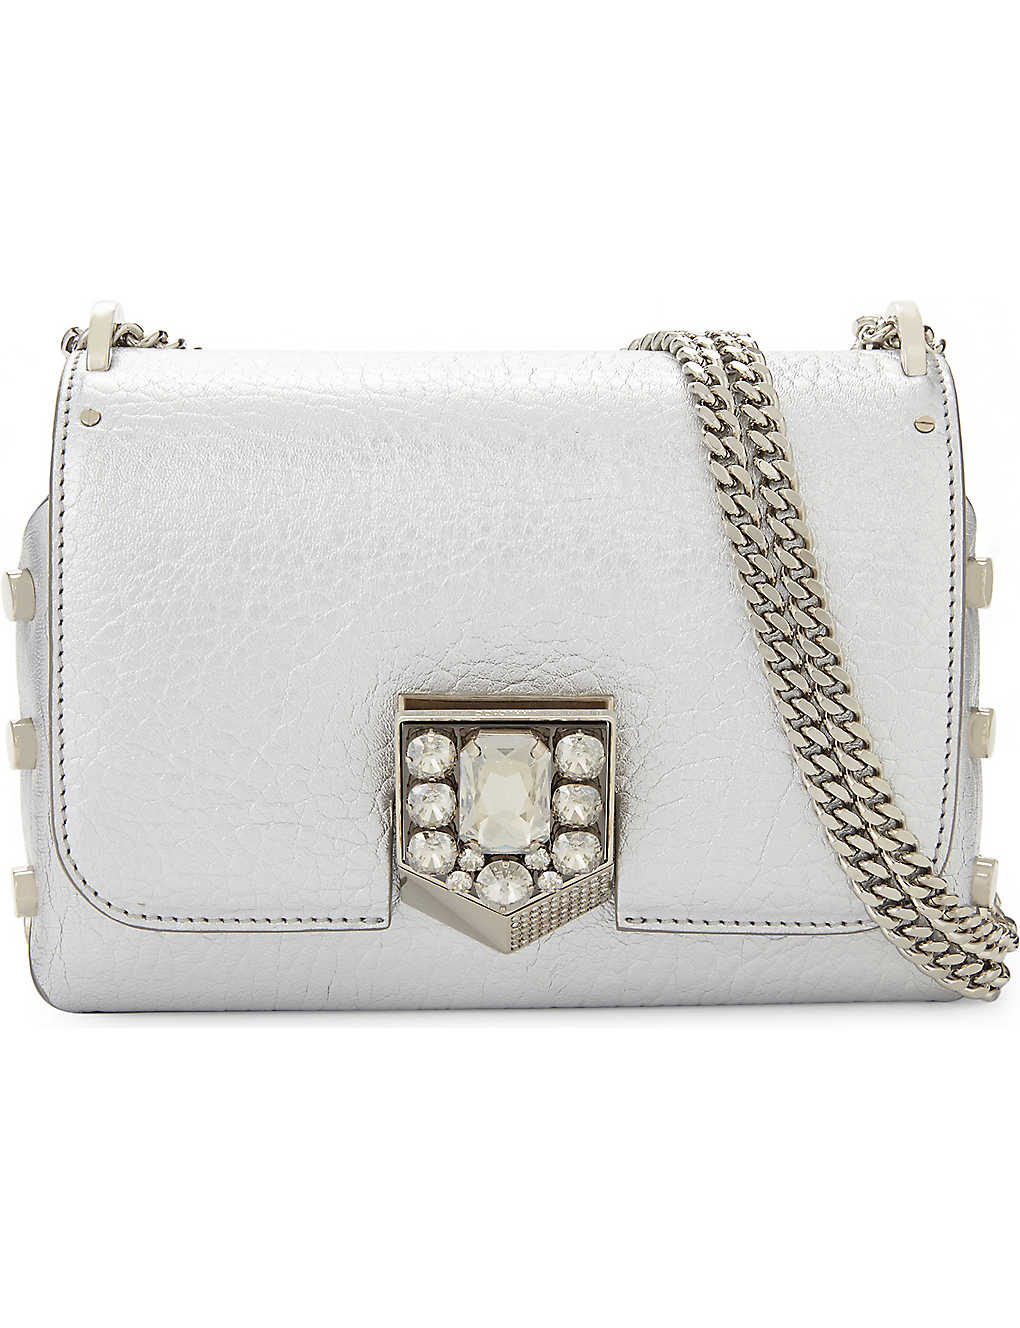 35dd23b0d60 JIMMY CHOO - Lockett Petite leather cross-body bag | Selfridges.com